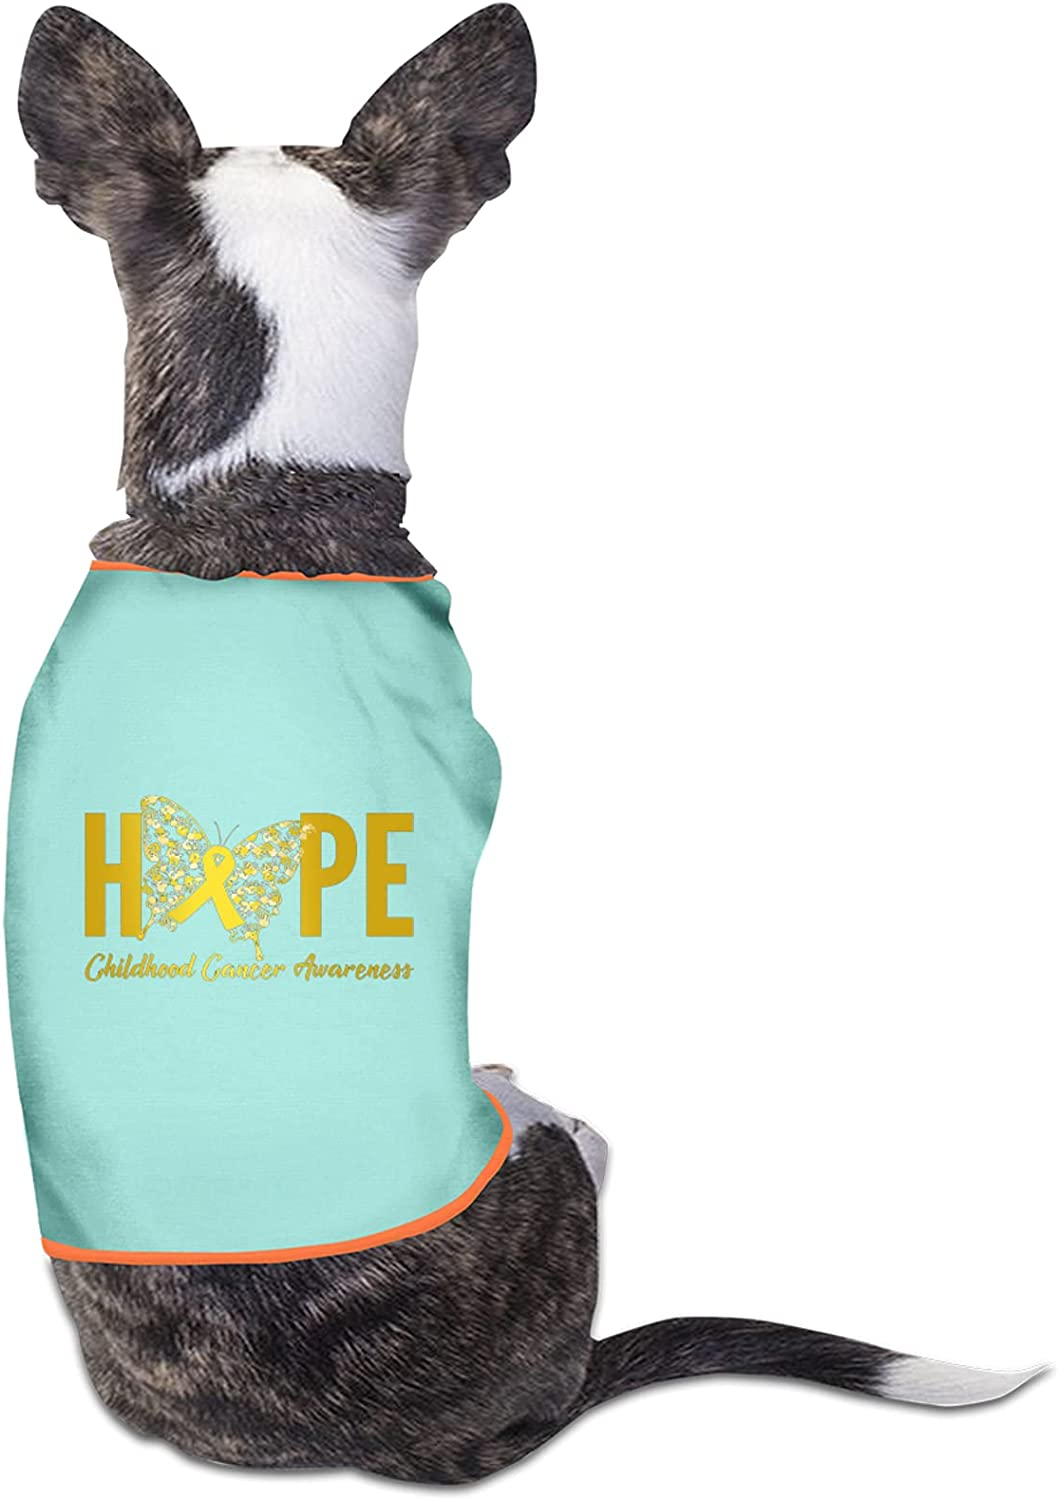 Hope Childhood Cancer Awareness Soldering Butterfly Pet Mail order Printed Shirts Pup